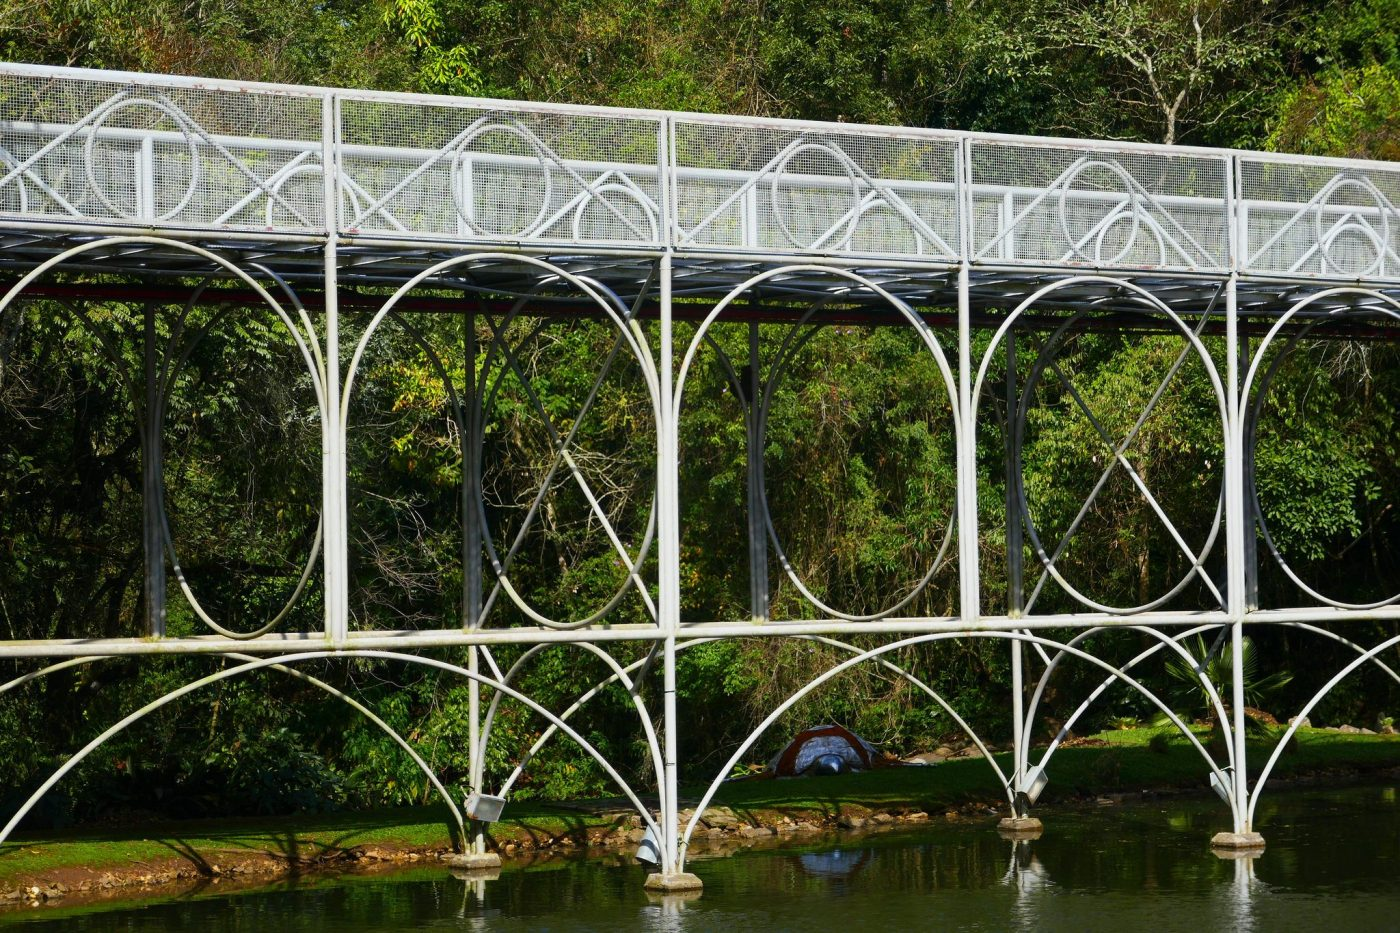 Curitiba, Brazil Contributed by Wendy from The Nomadic Vegan